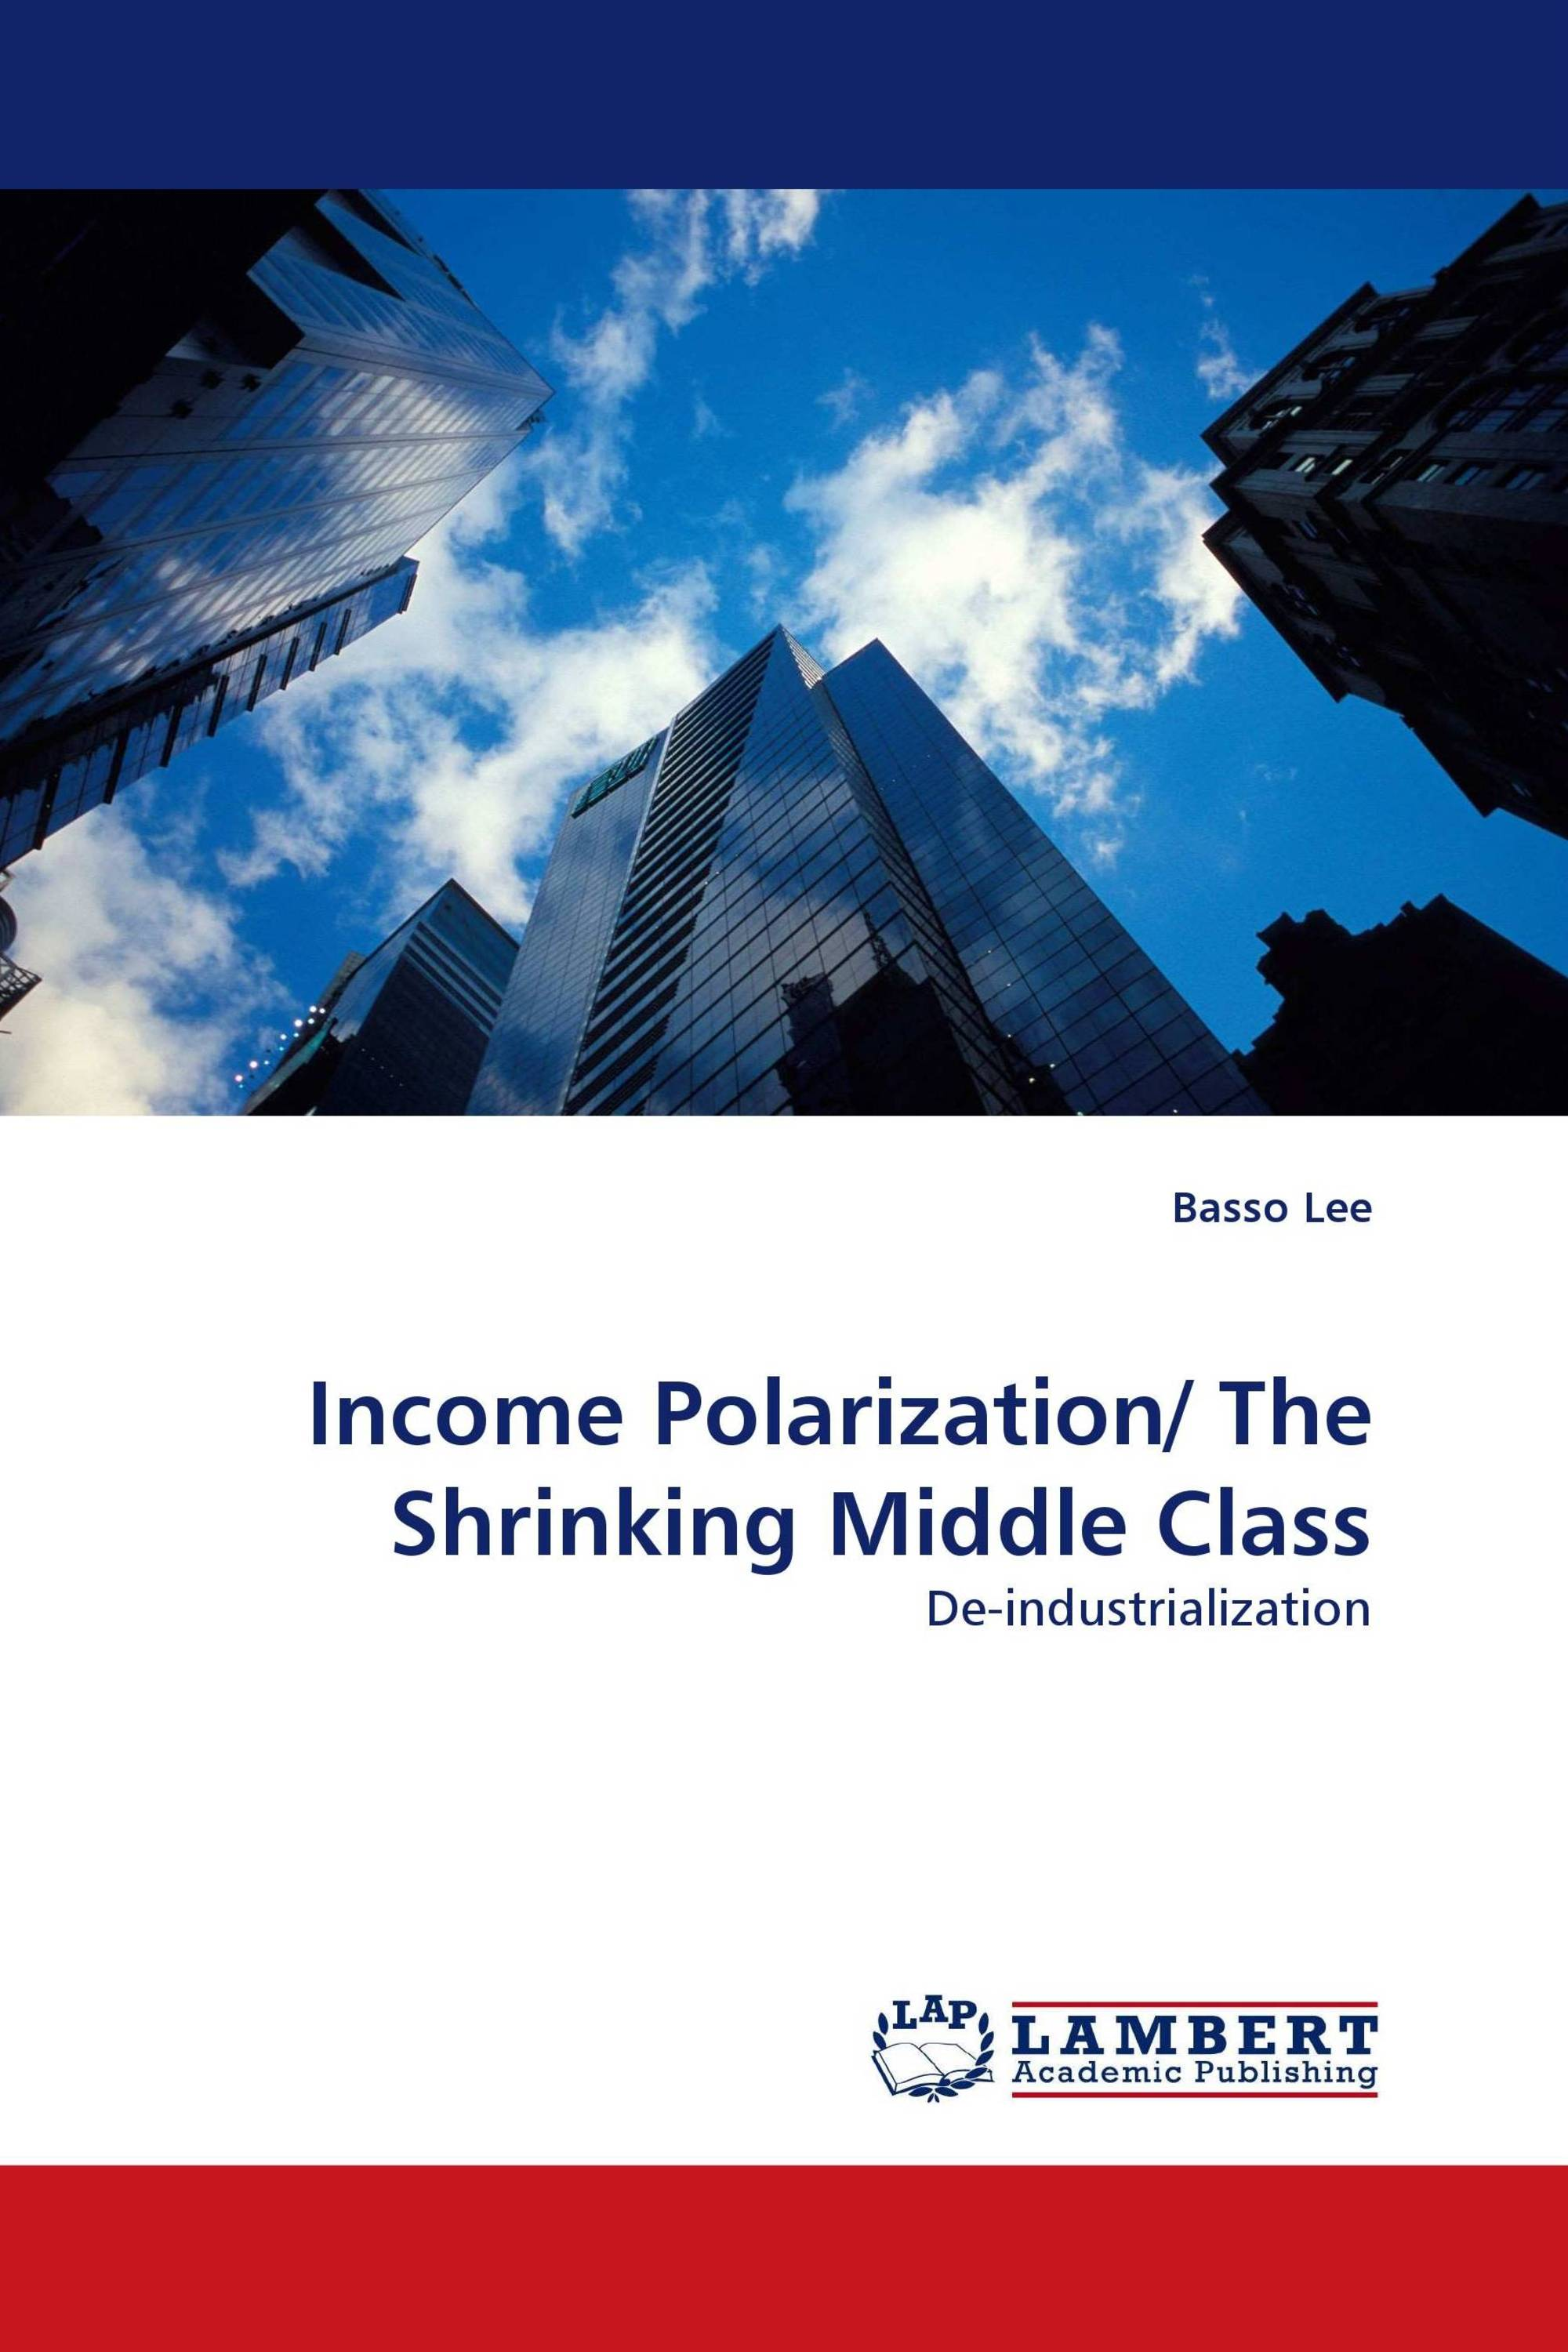 Income Polarization/ The Shrinking Middle Class